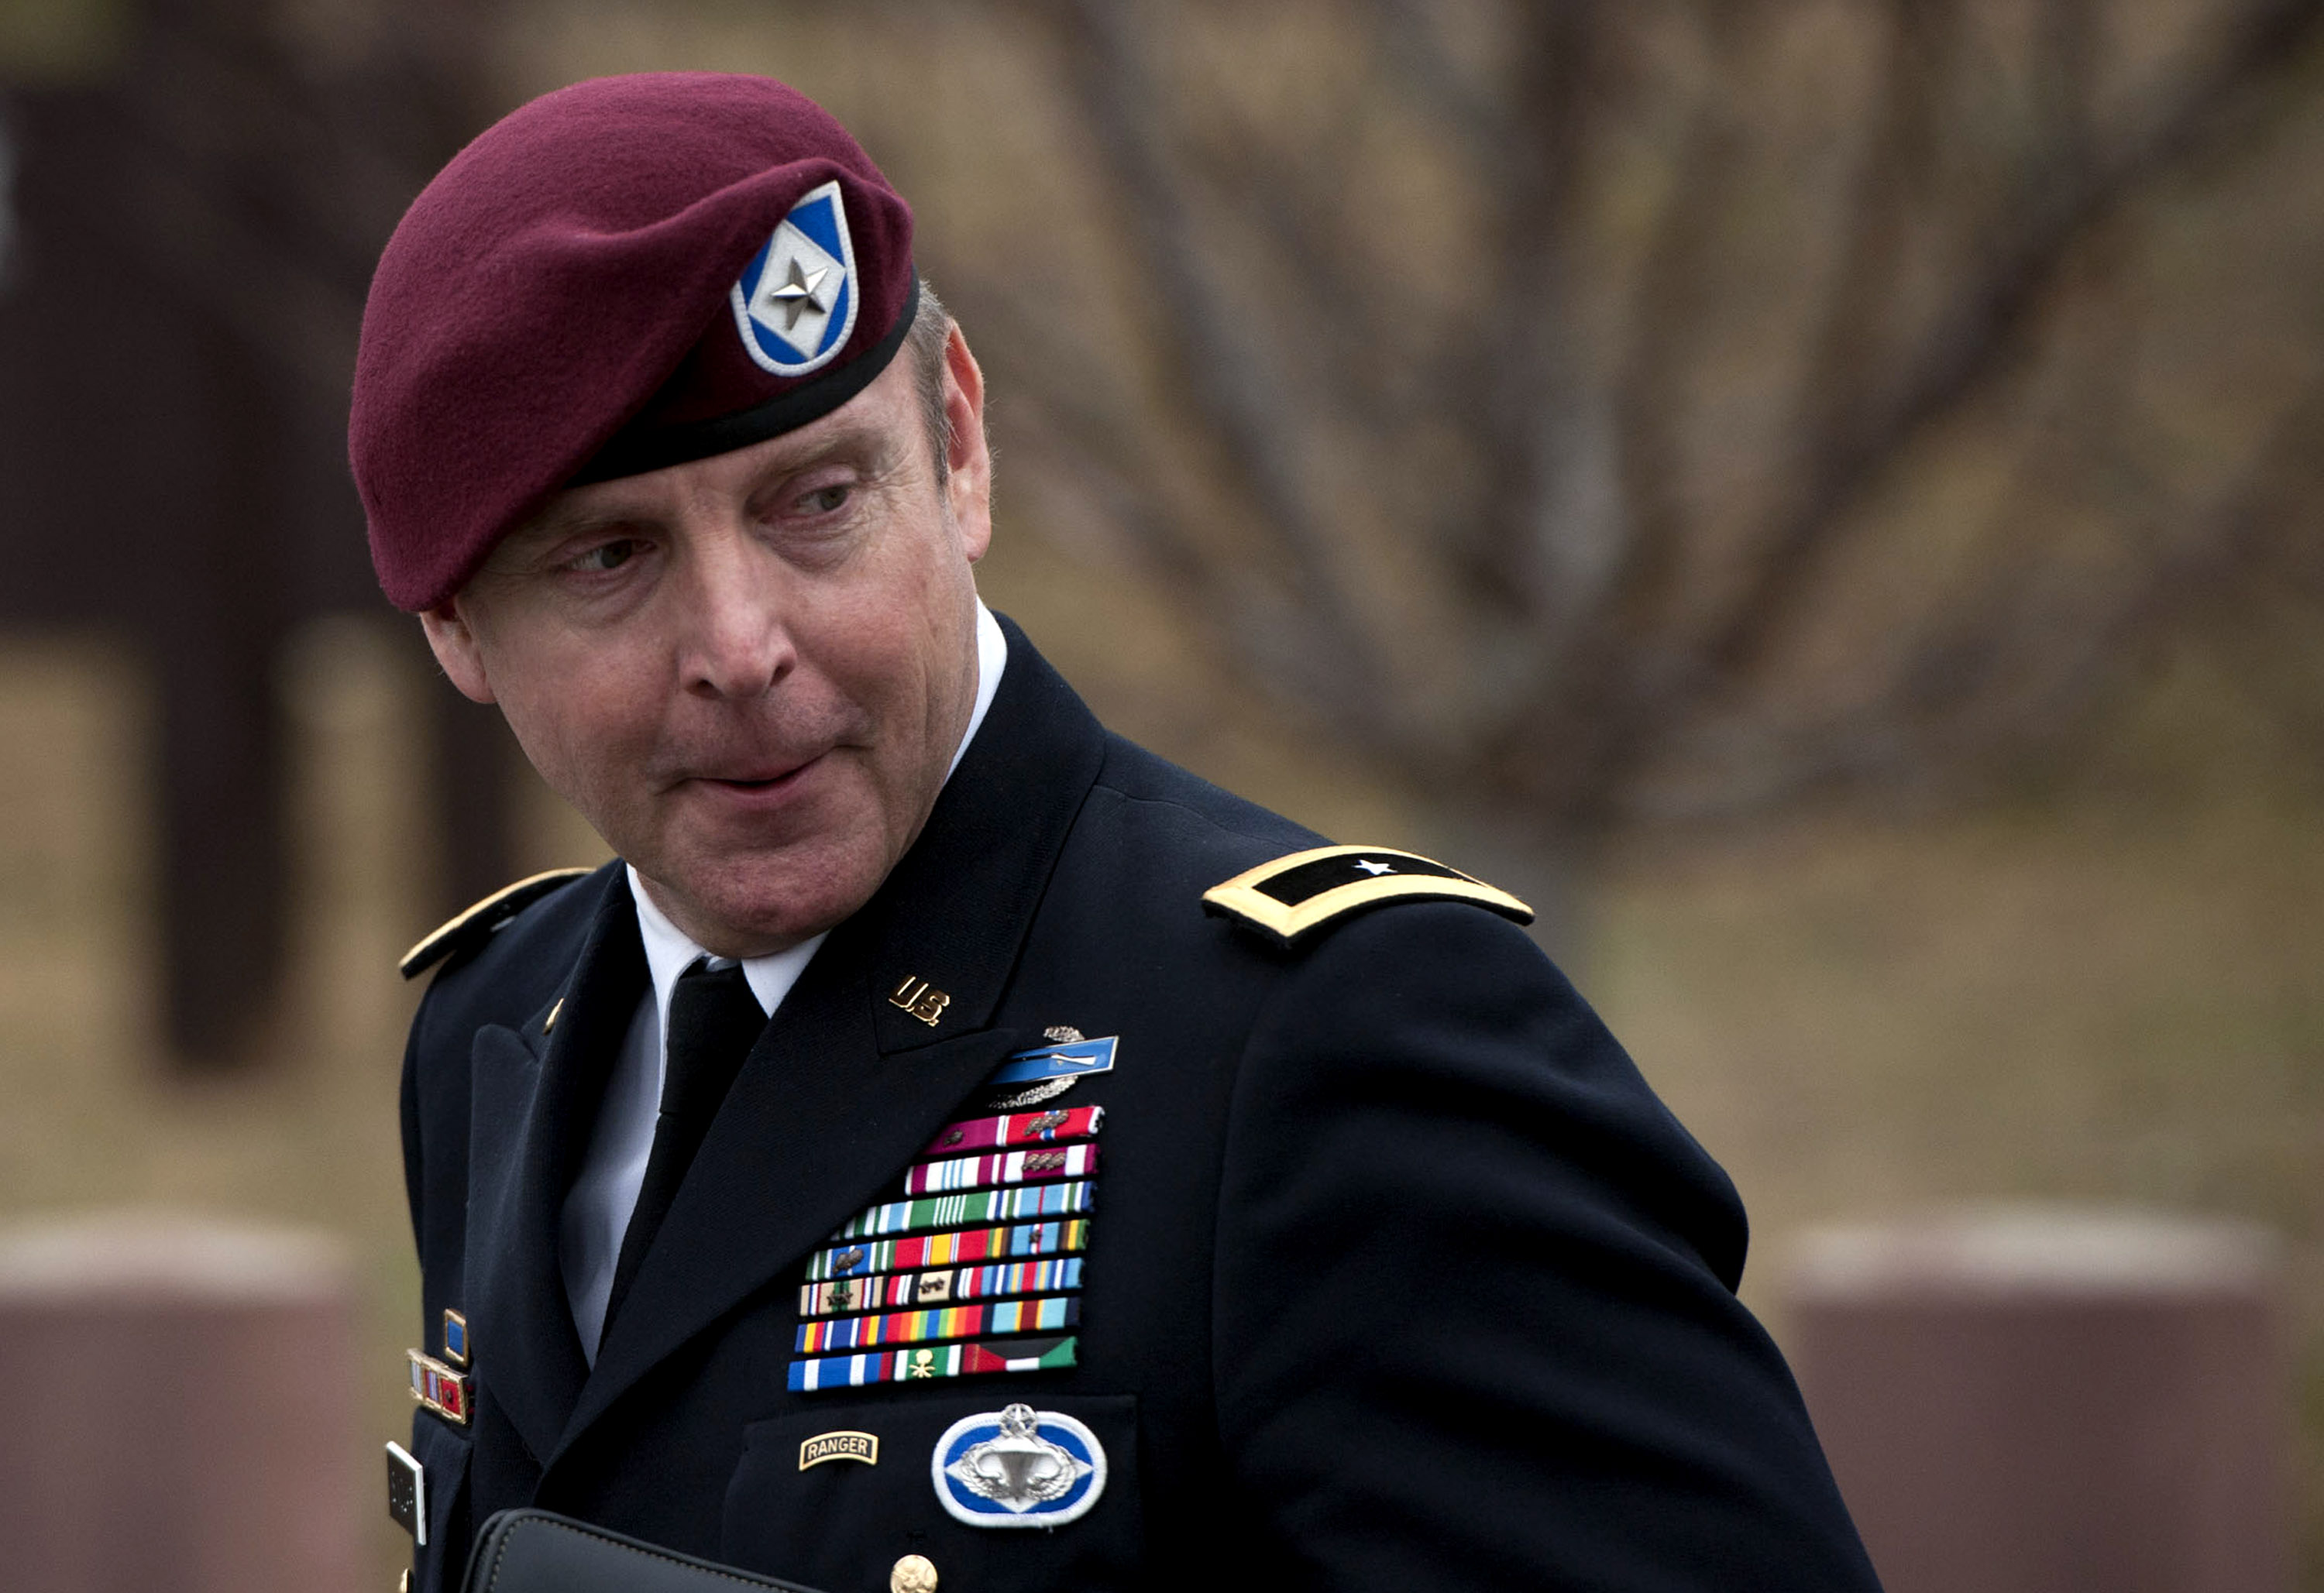 Brigadier General Jeffrey Sinclair leaves the Fort Bragg Courthouse on Monday.